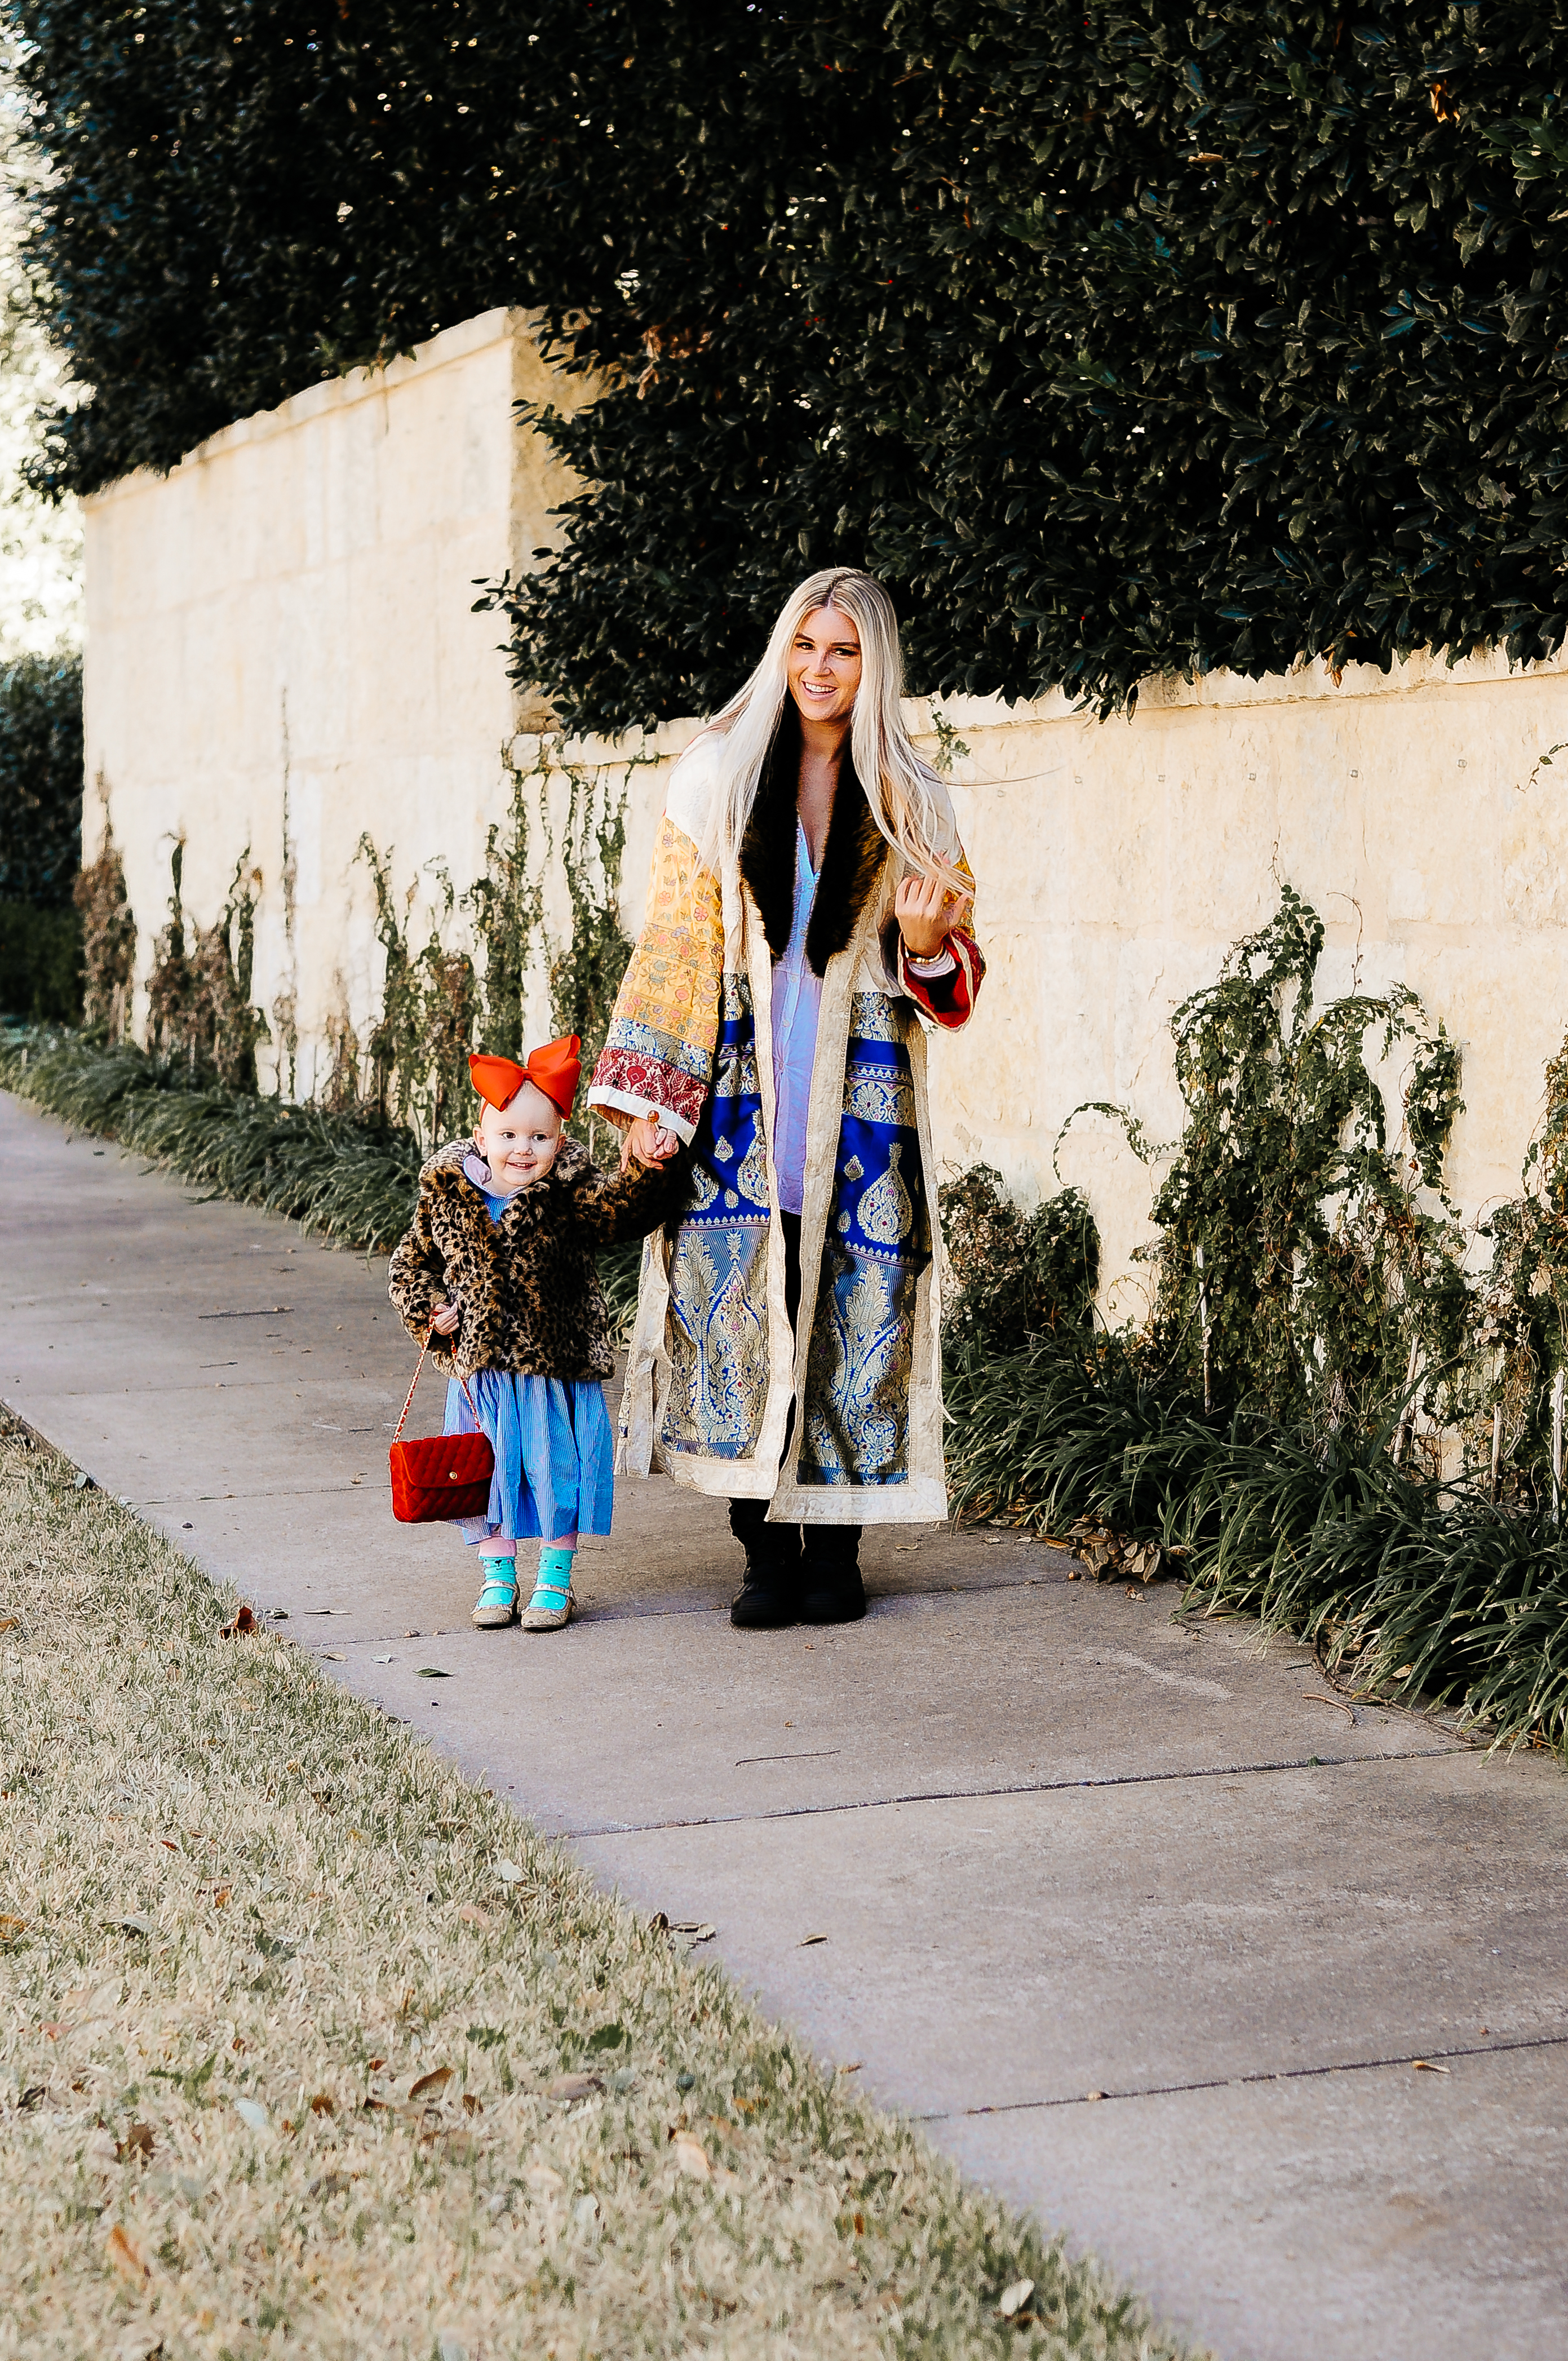 Stephany Bowman wearing FREE PEOPLE Destination Unknown Coat, Ugg boots. Angelina Bowman wearing leopard faux fur coat from OSH KOSH, Red bag from JANIE AND JACK, and red bow from ETSY